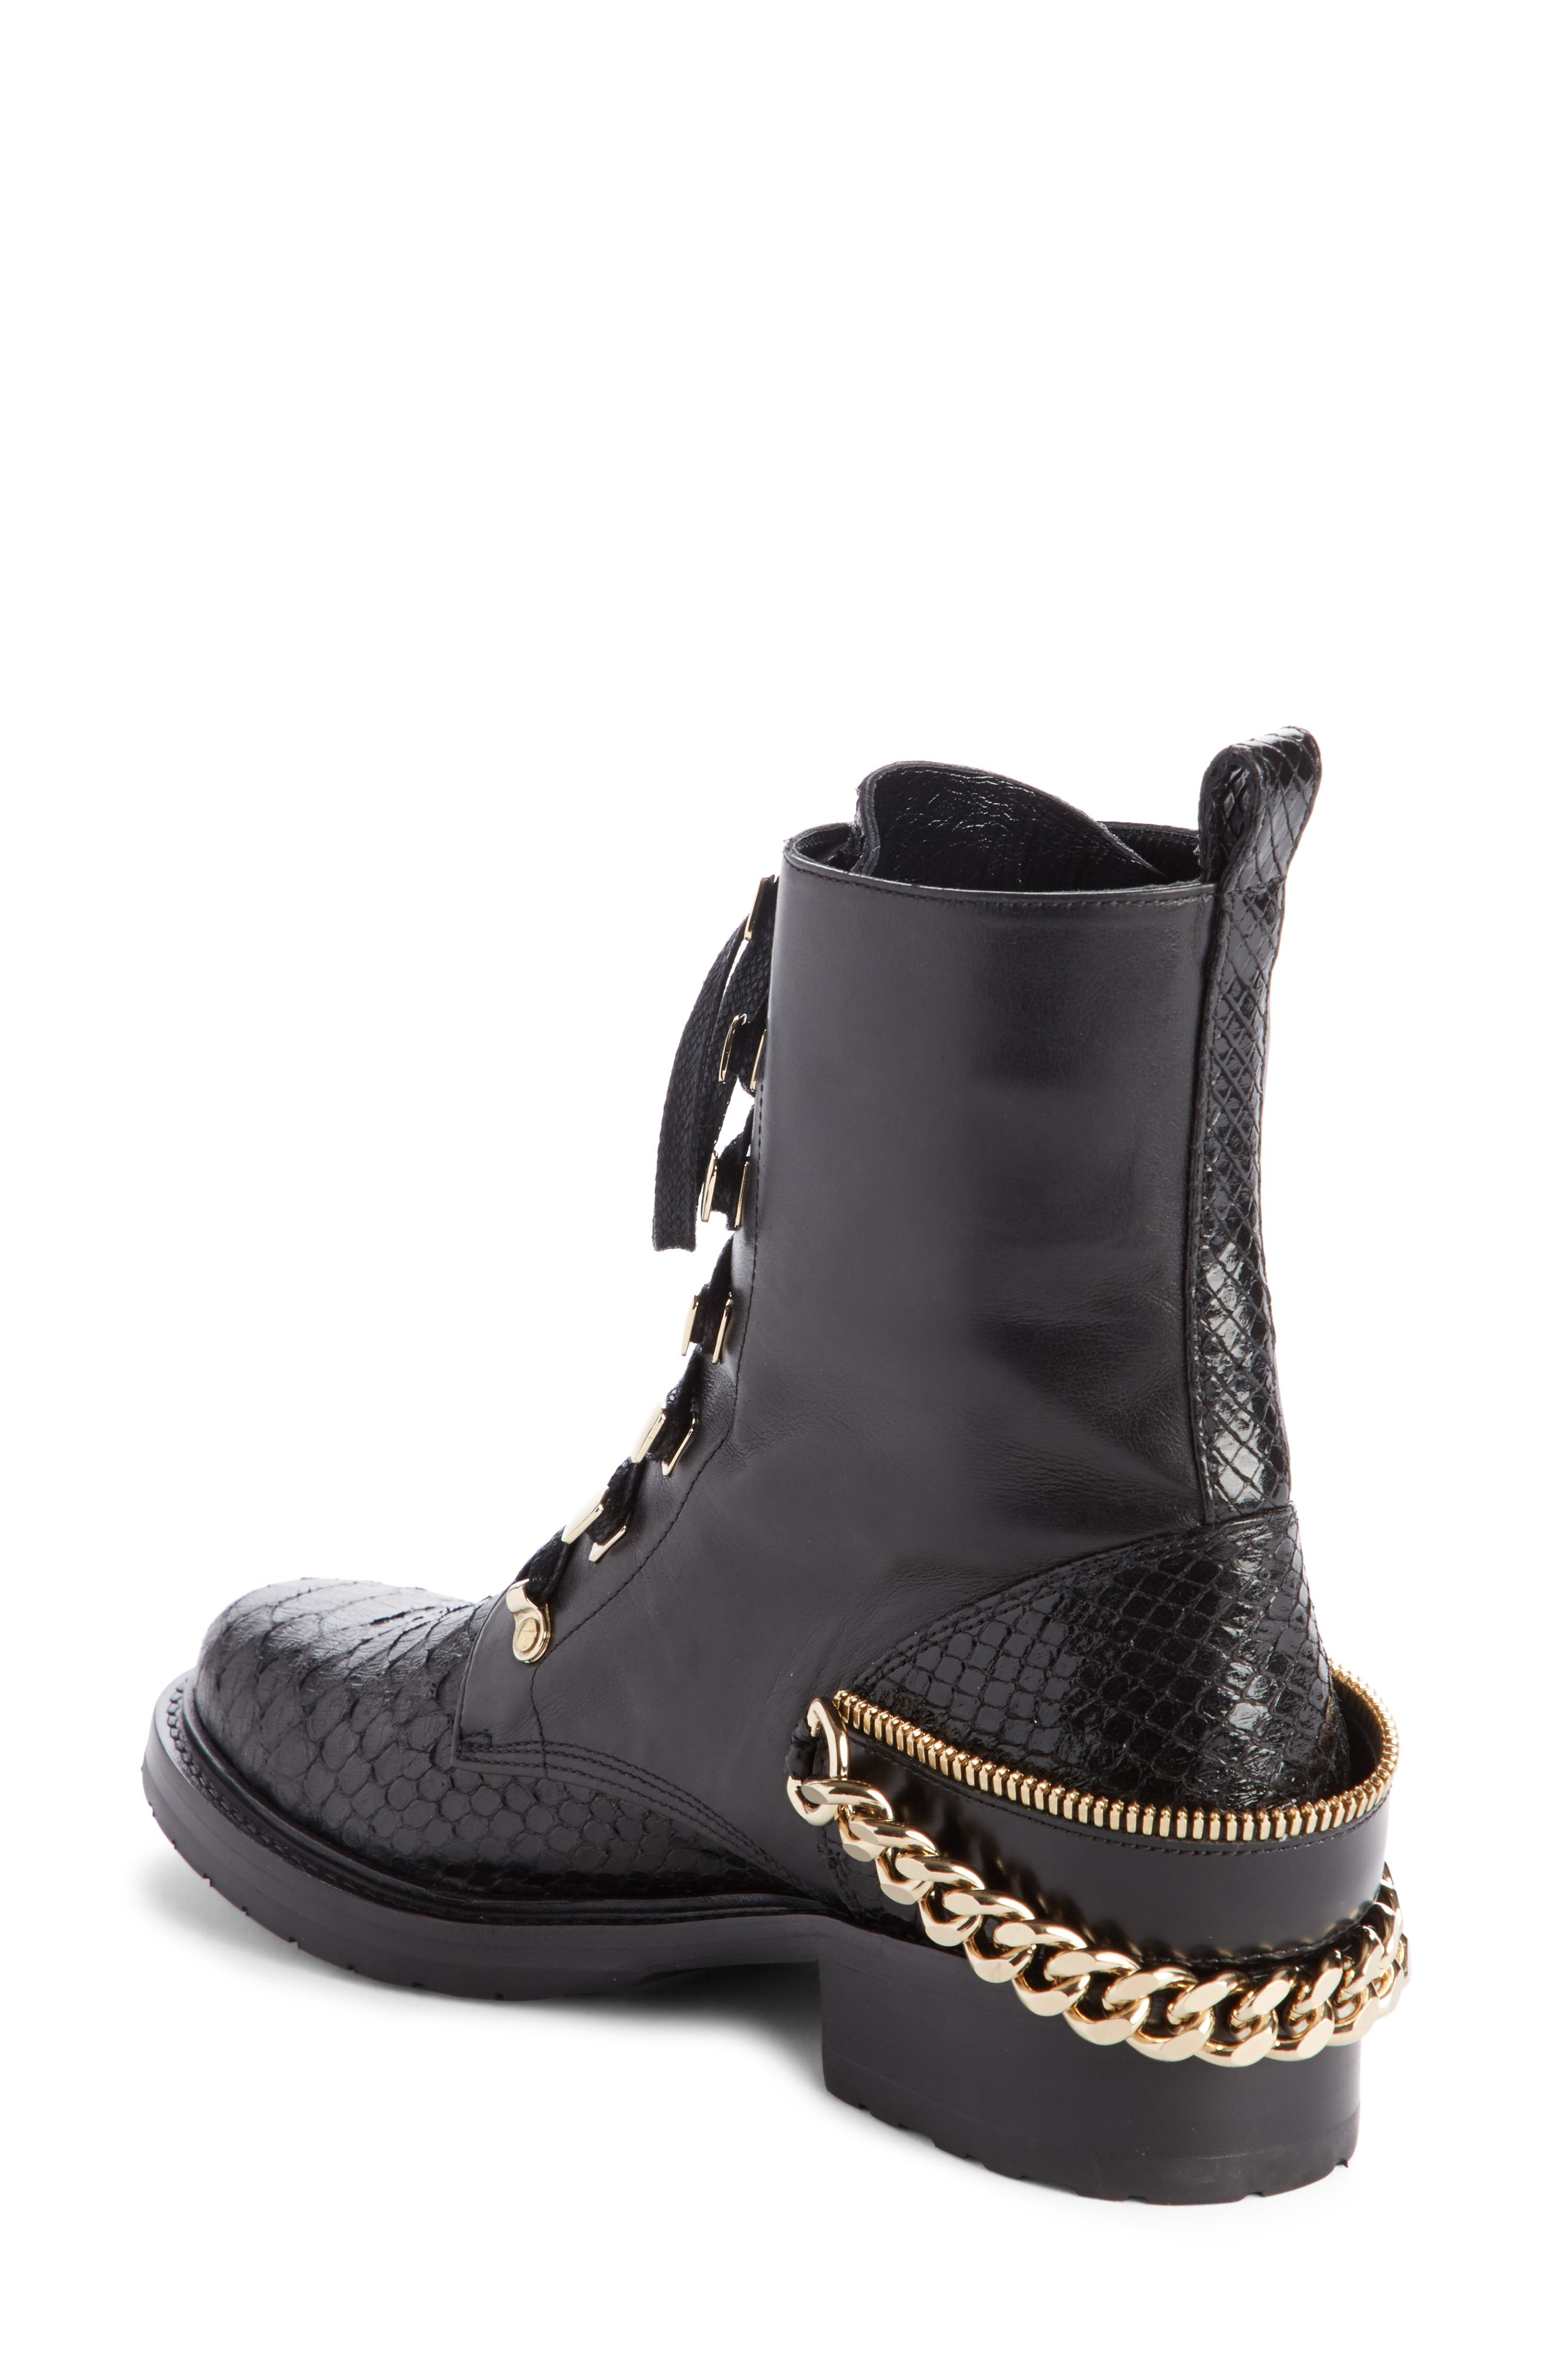 Alternate Image 2  - Lanvin Chain Biker Boot (Women)